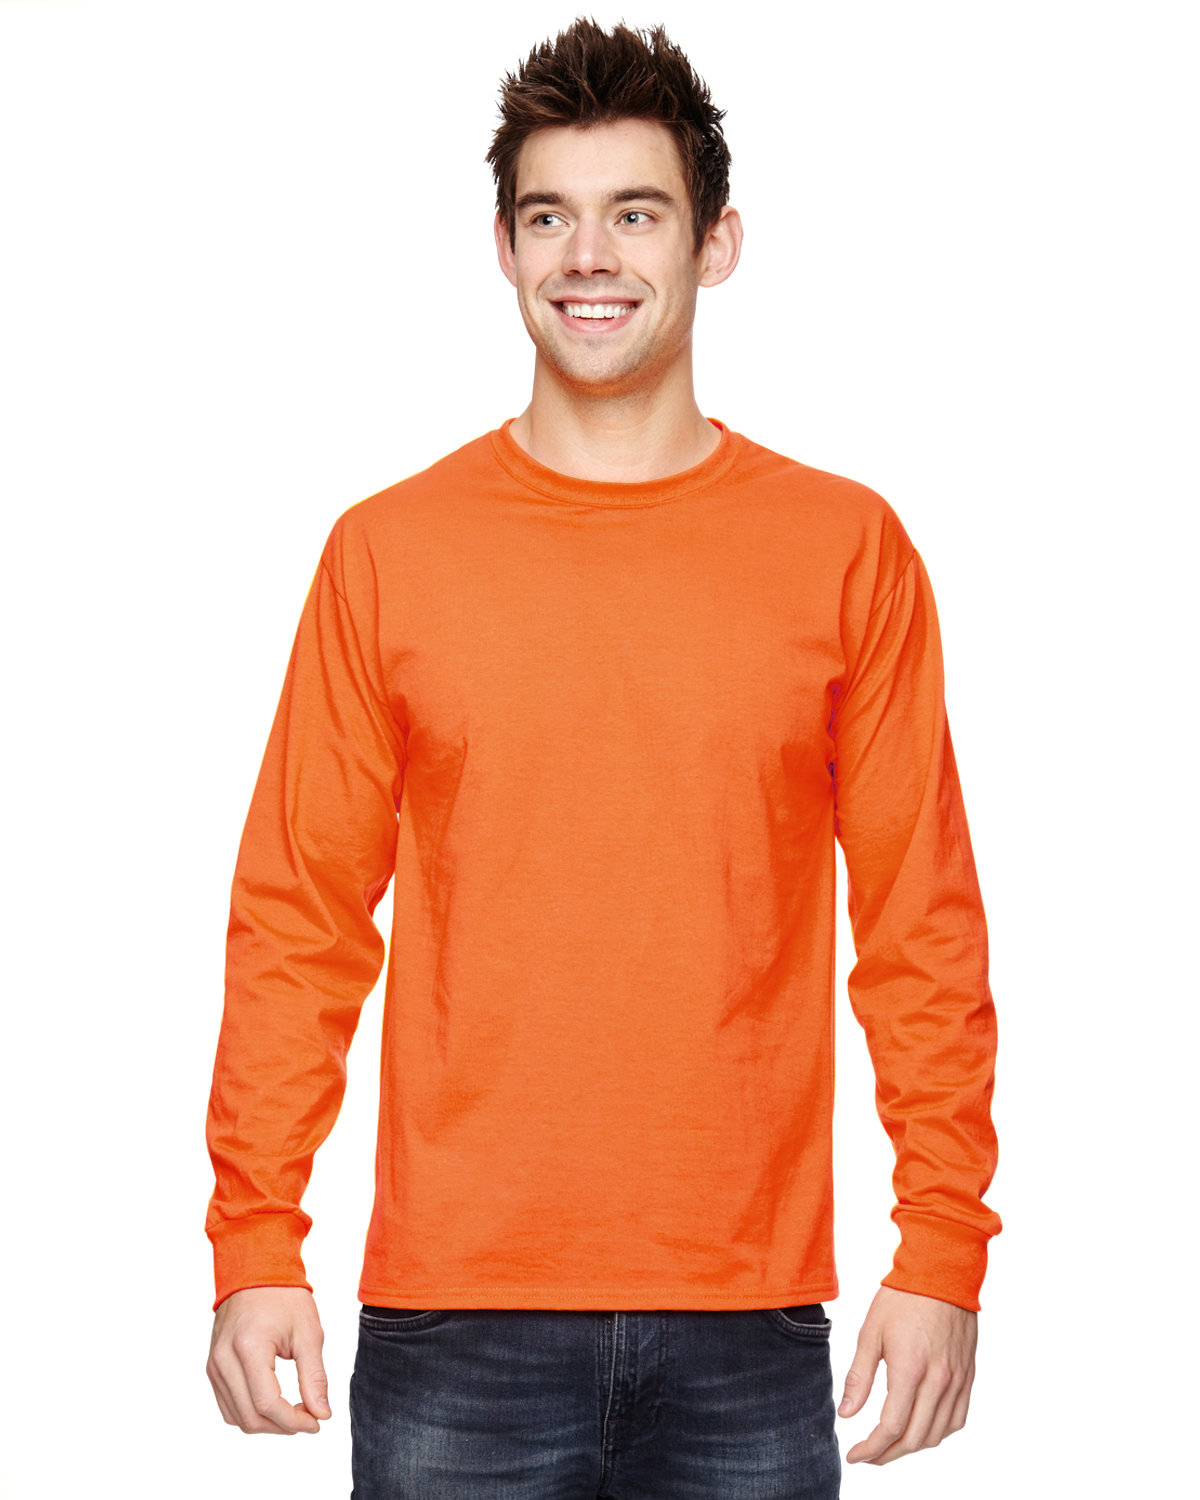 Fruit of the Loom Adult HD Cotton™ Long-Sleeve T-Shirt SAFETY ORANGE